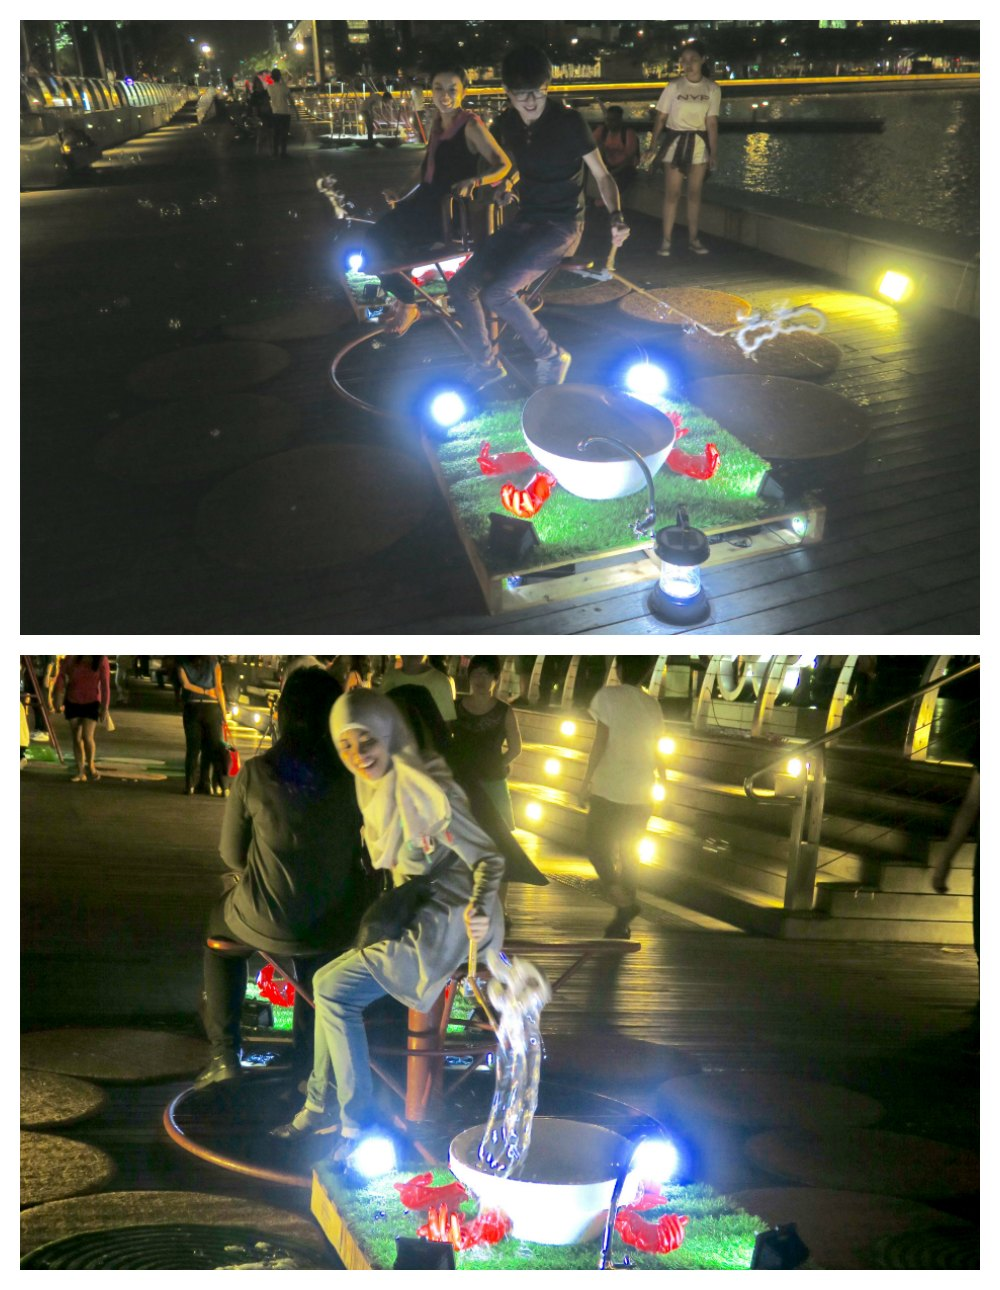 Fun with soap bubbles at light 2016 |curlytraveller.com